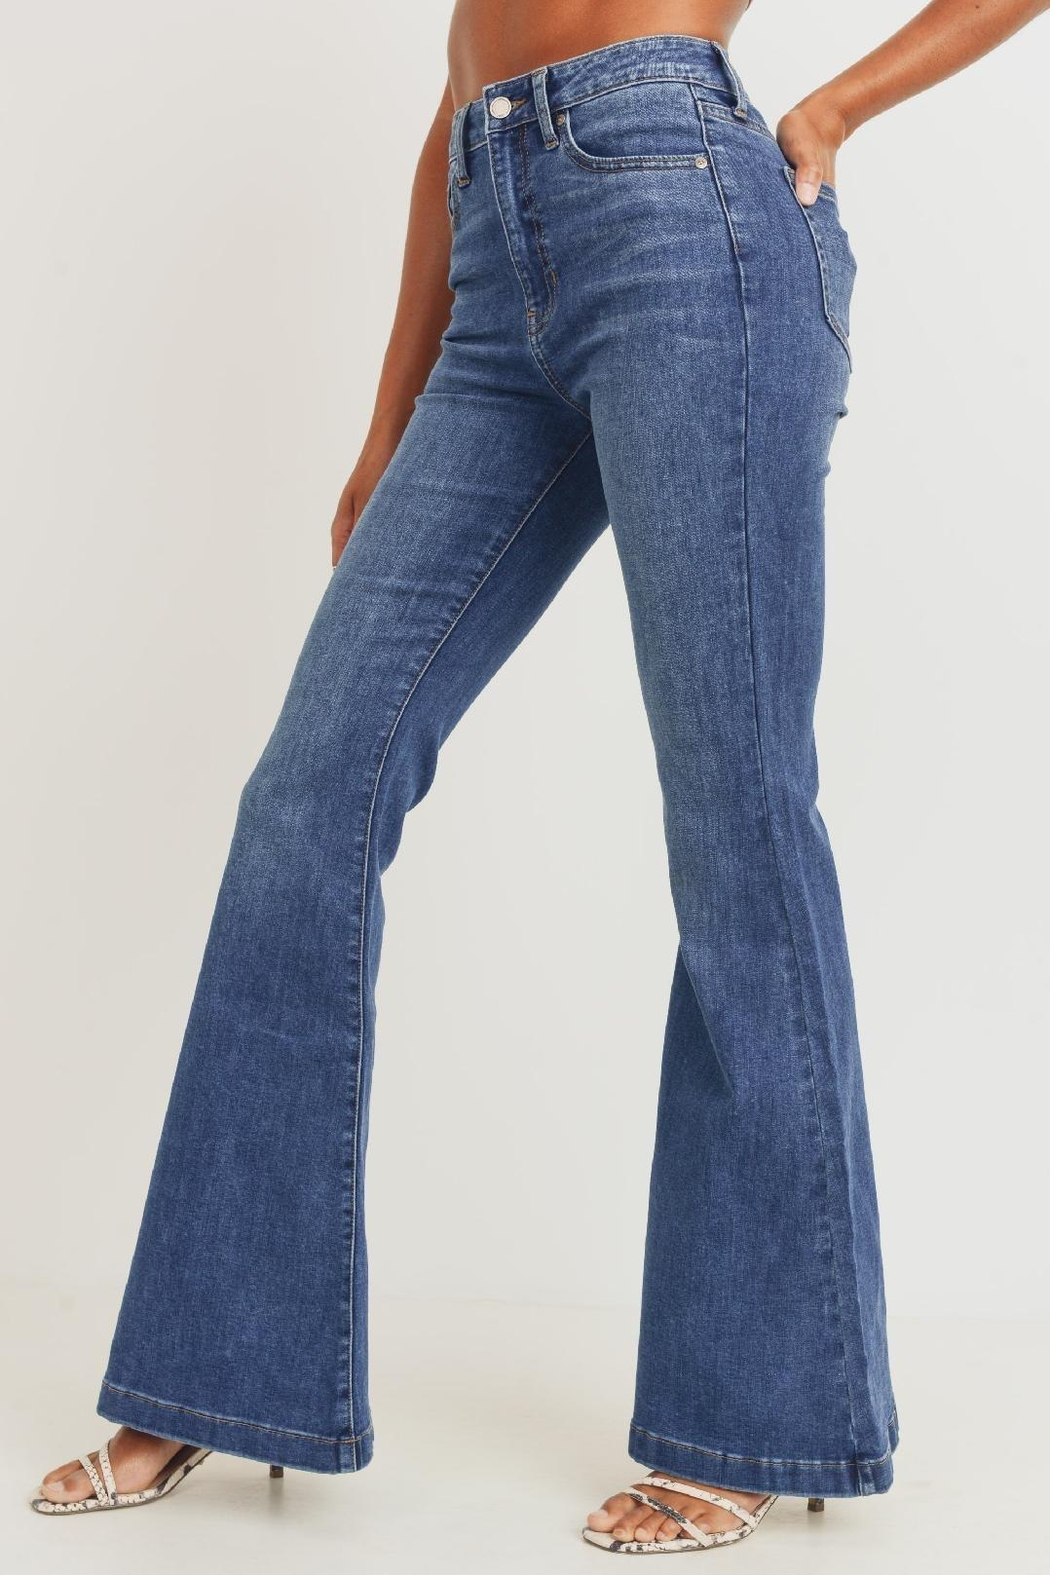 JBD The Cher Ultra High Waist Bell Bottom Jeans - Back Cropped Image